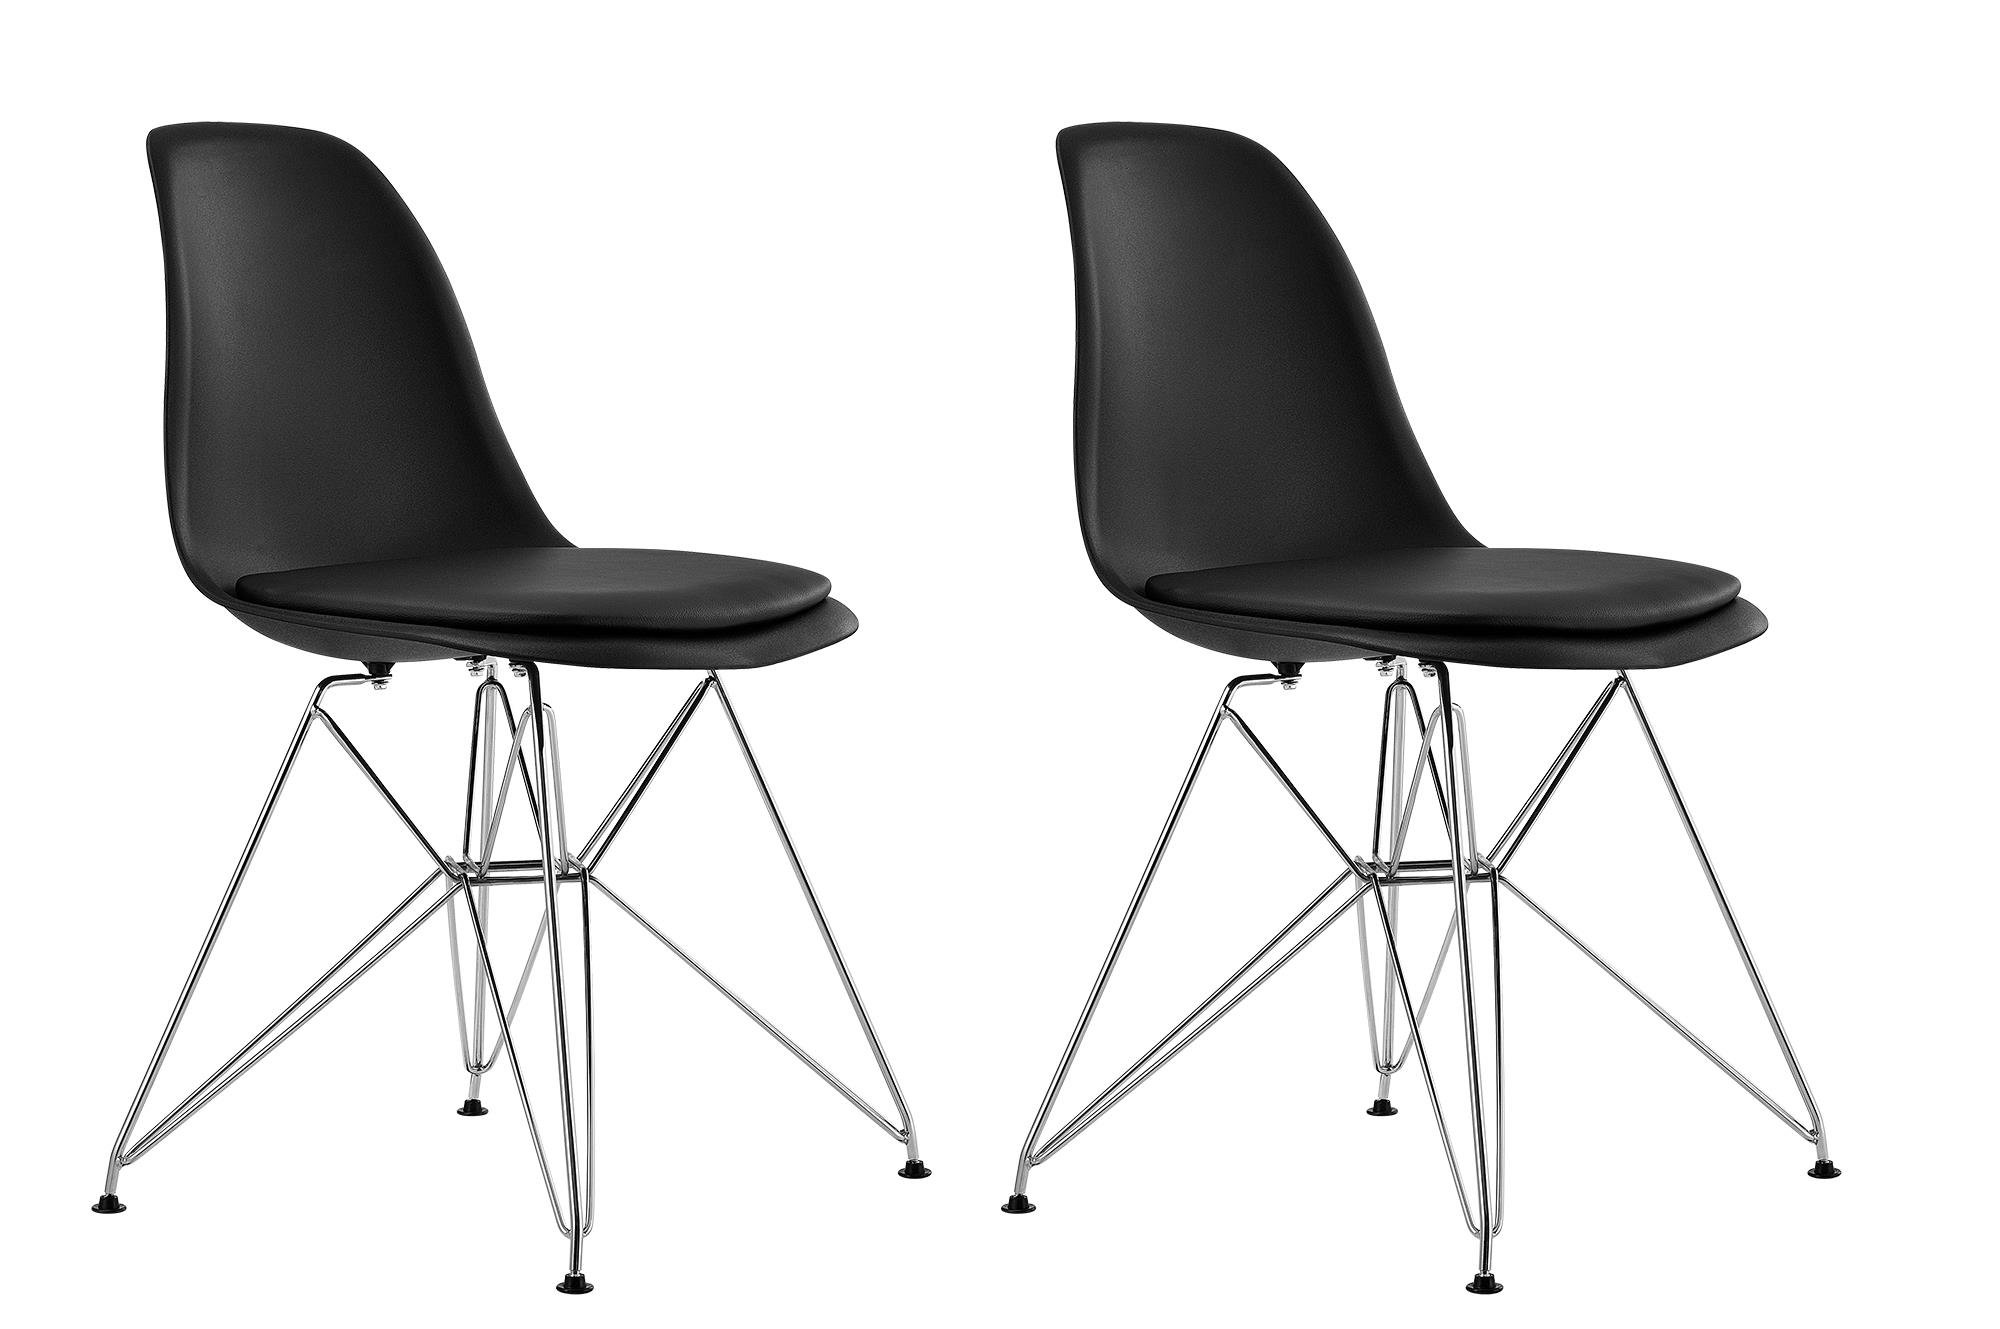 DHP Mid Century Modern Molded Chair with Upholstered Seat, Set of 2, Black